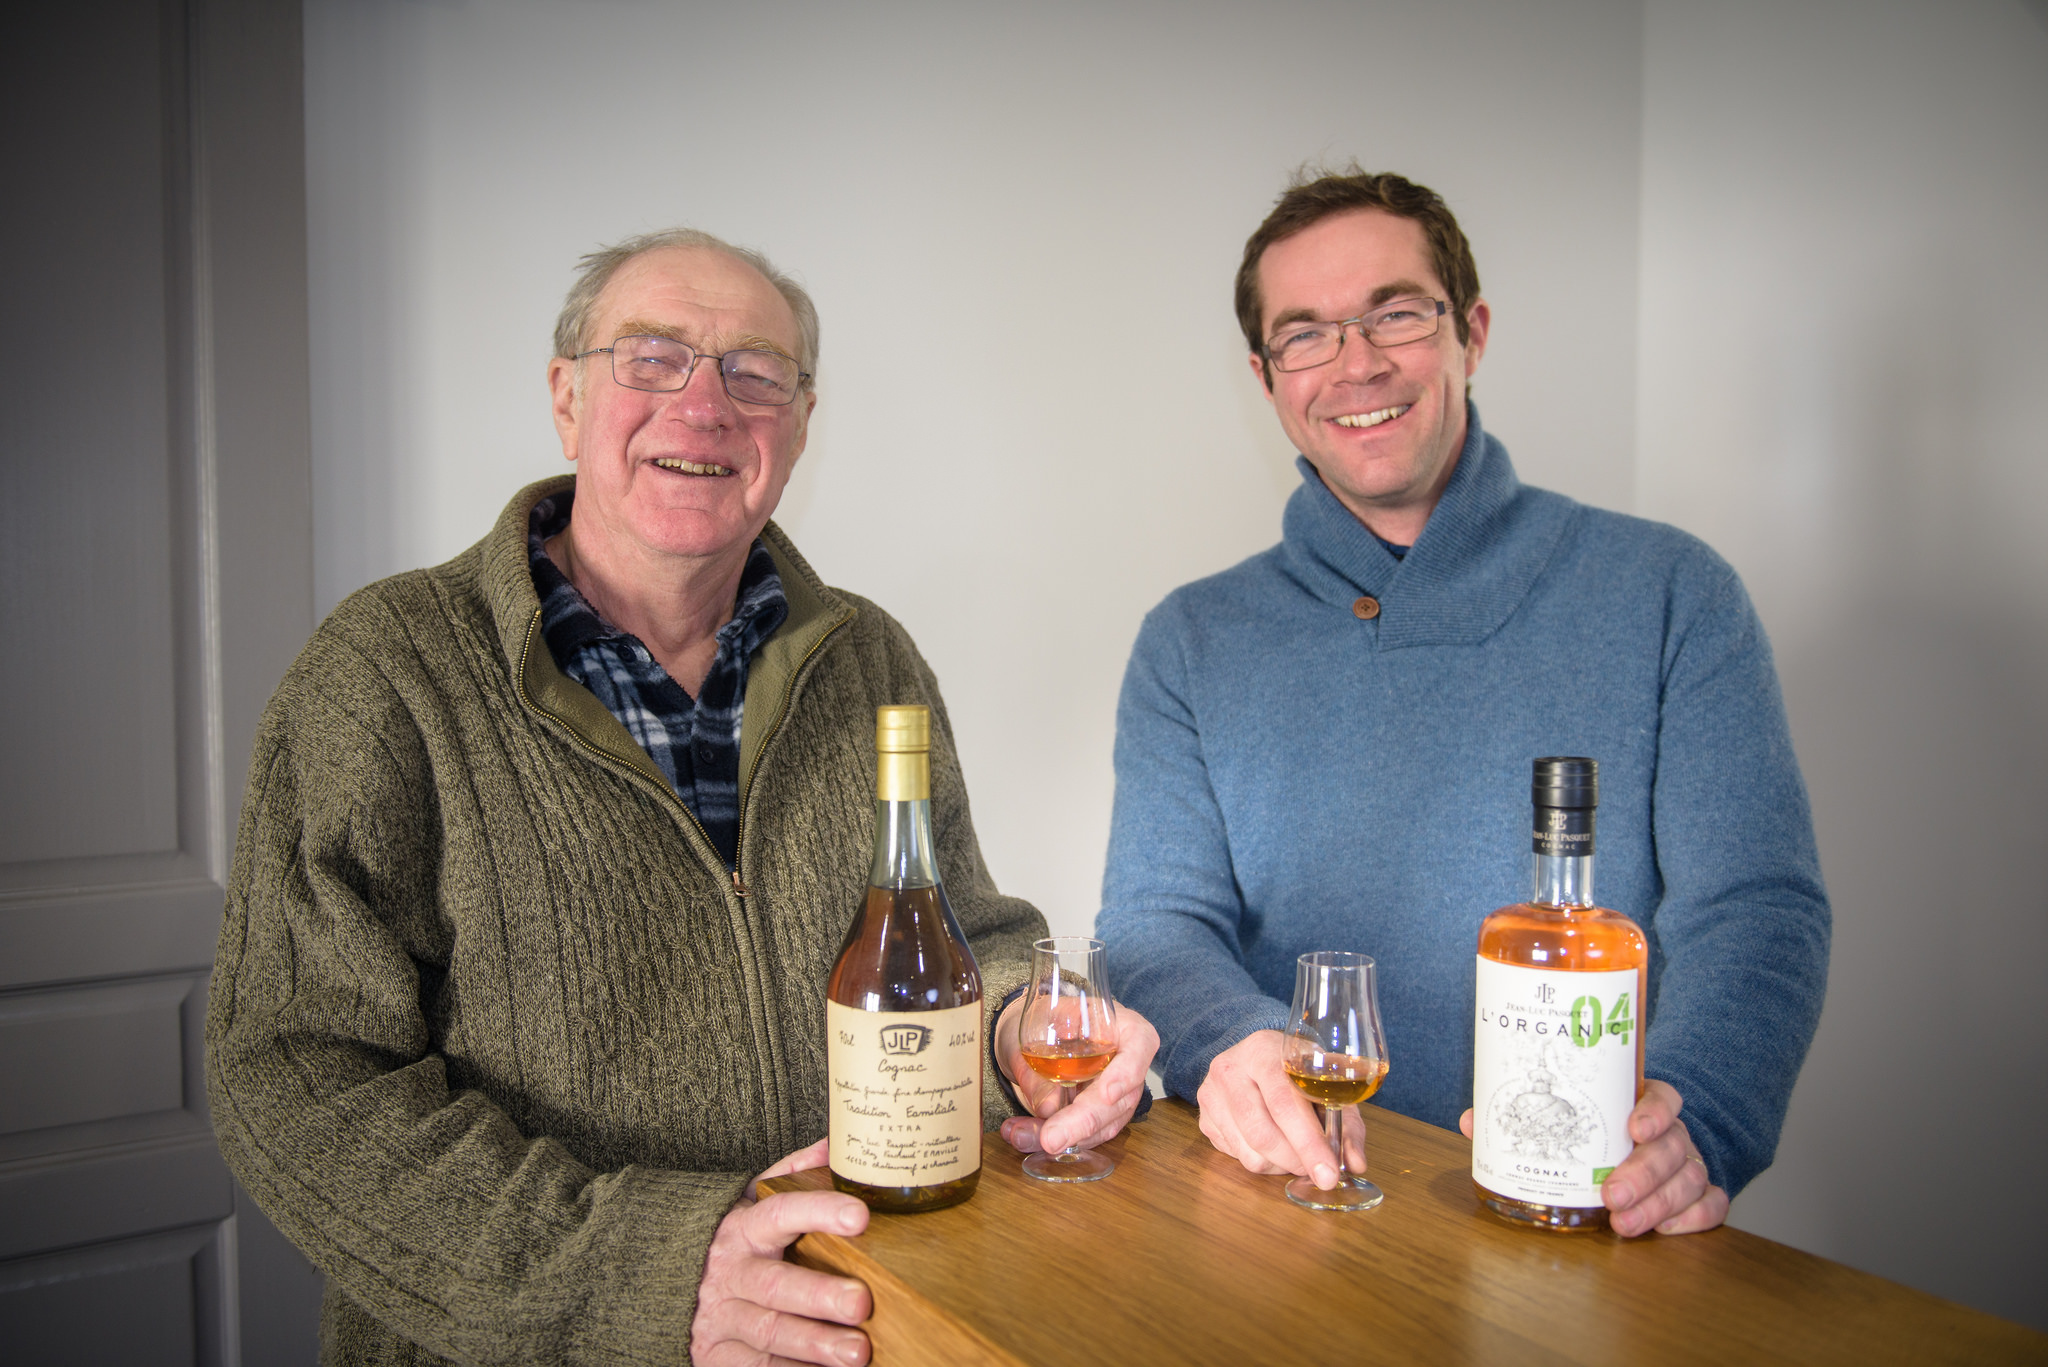 Jean Luc Pasquet Cognac: Where family matters